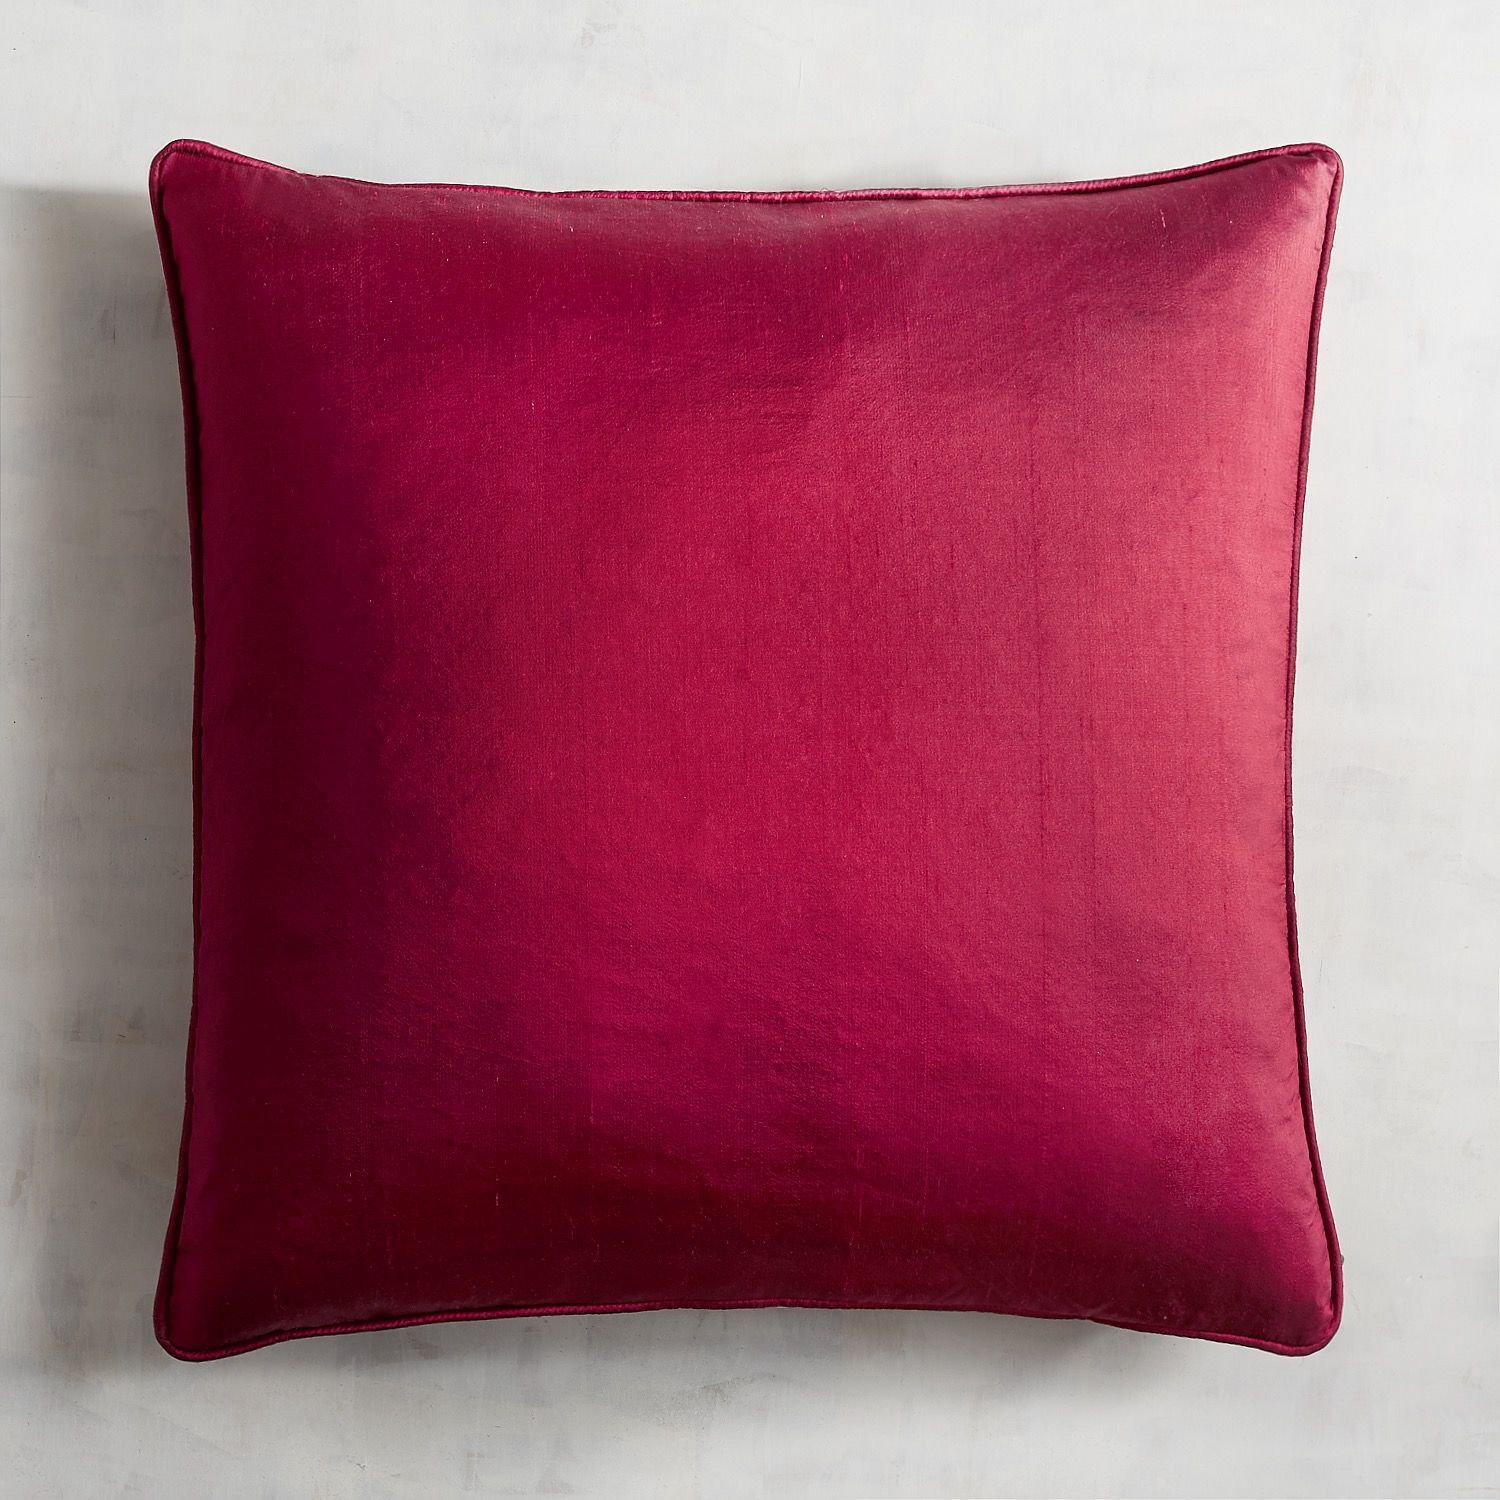 Solid Color Decorative Throw Pillows